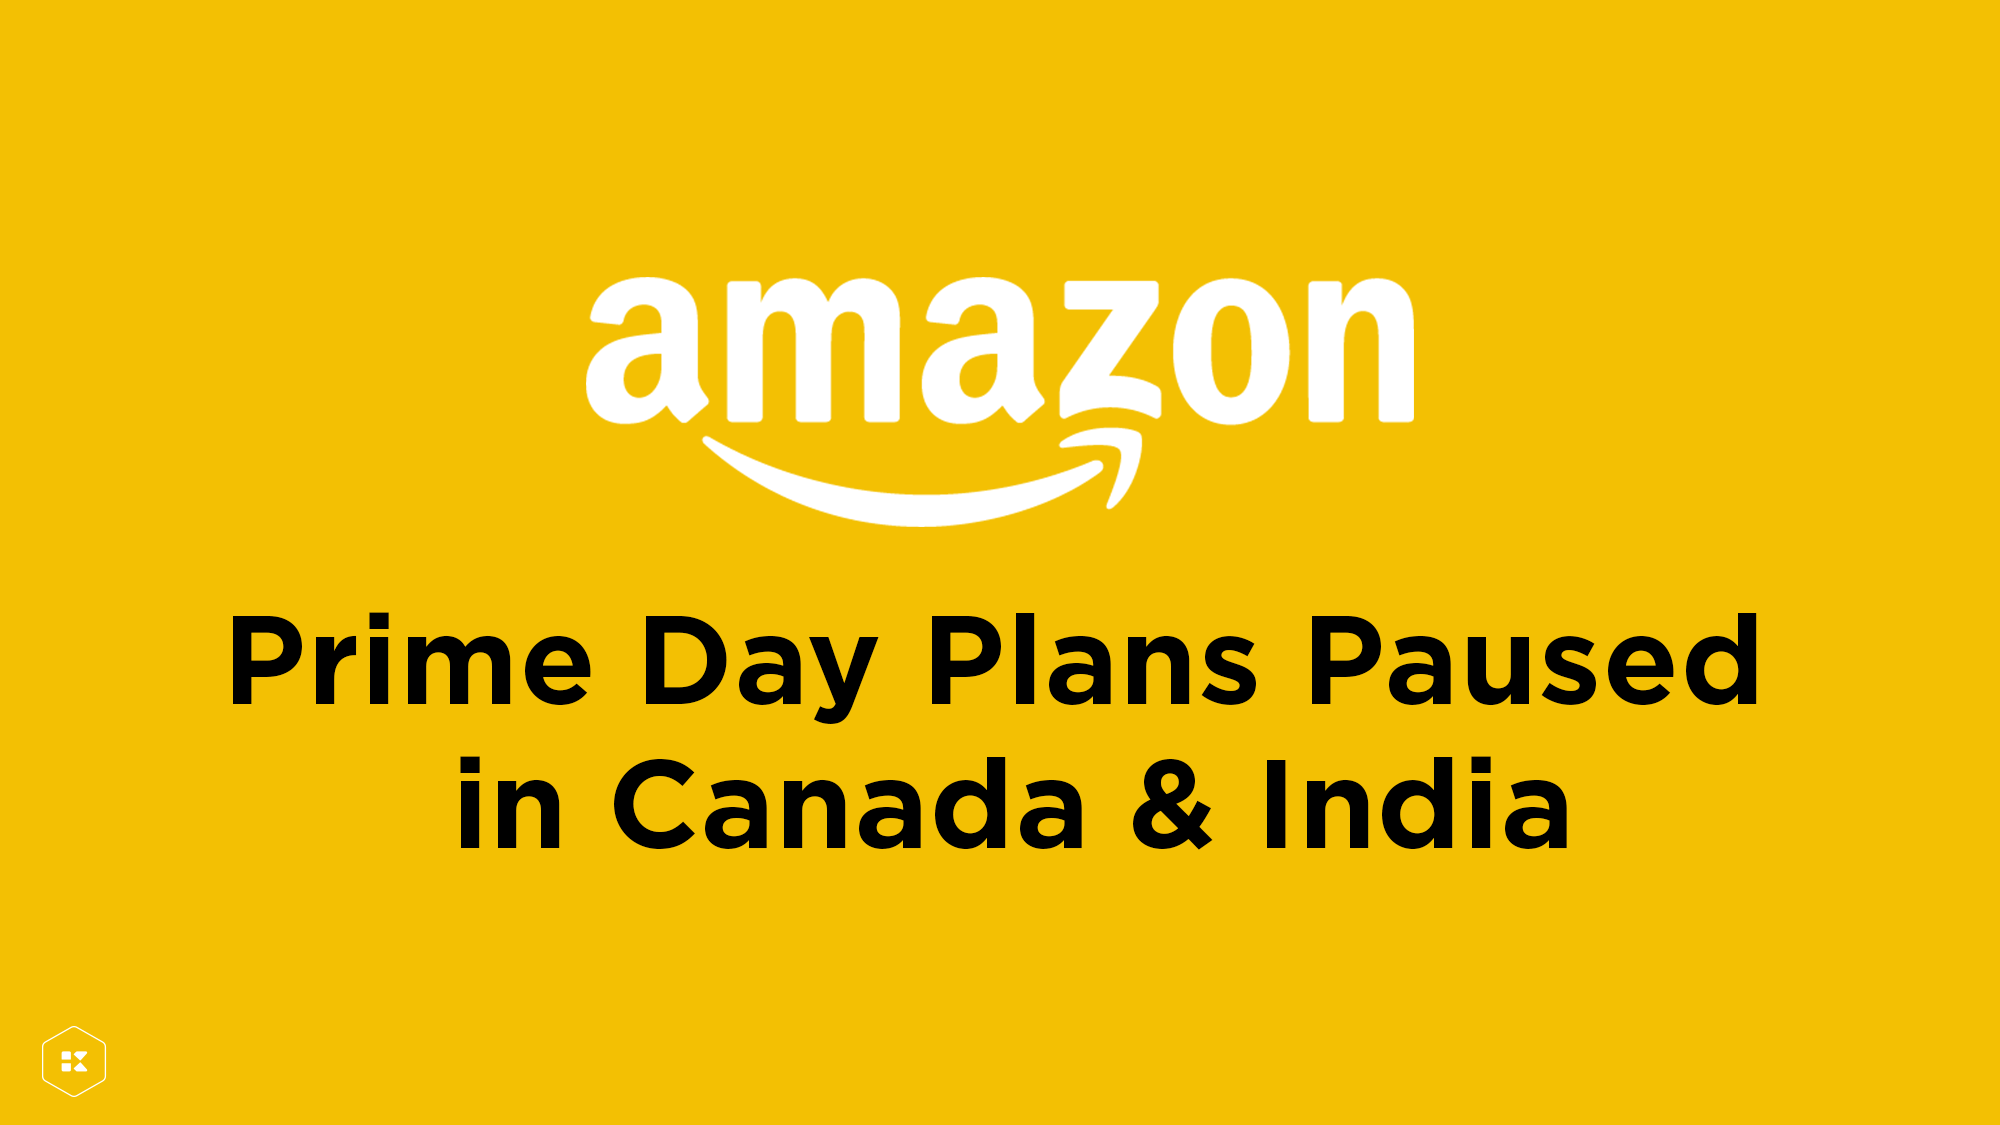 Amazon Pauses Prime Day Plans for Canada& Indiadue to COVID-19Concerns